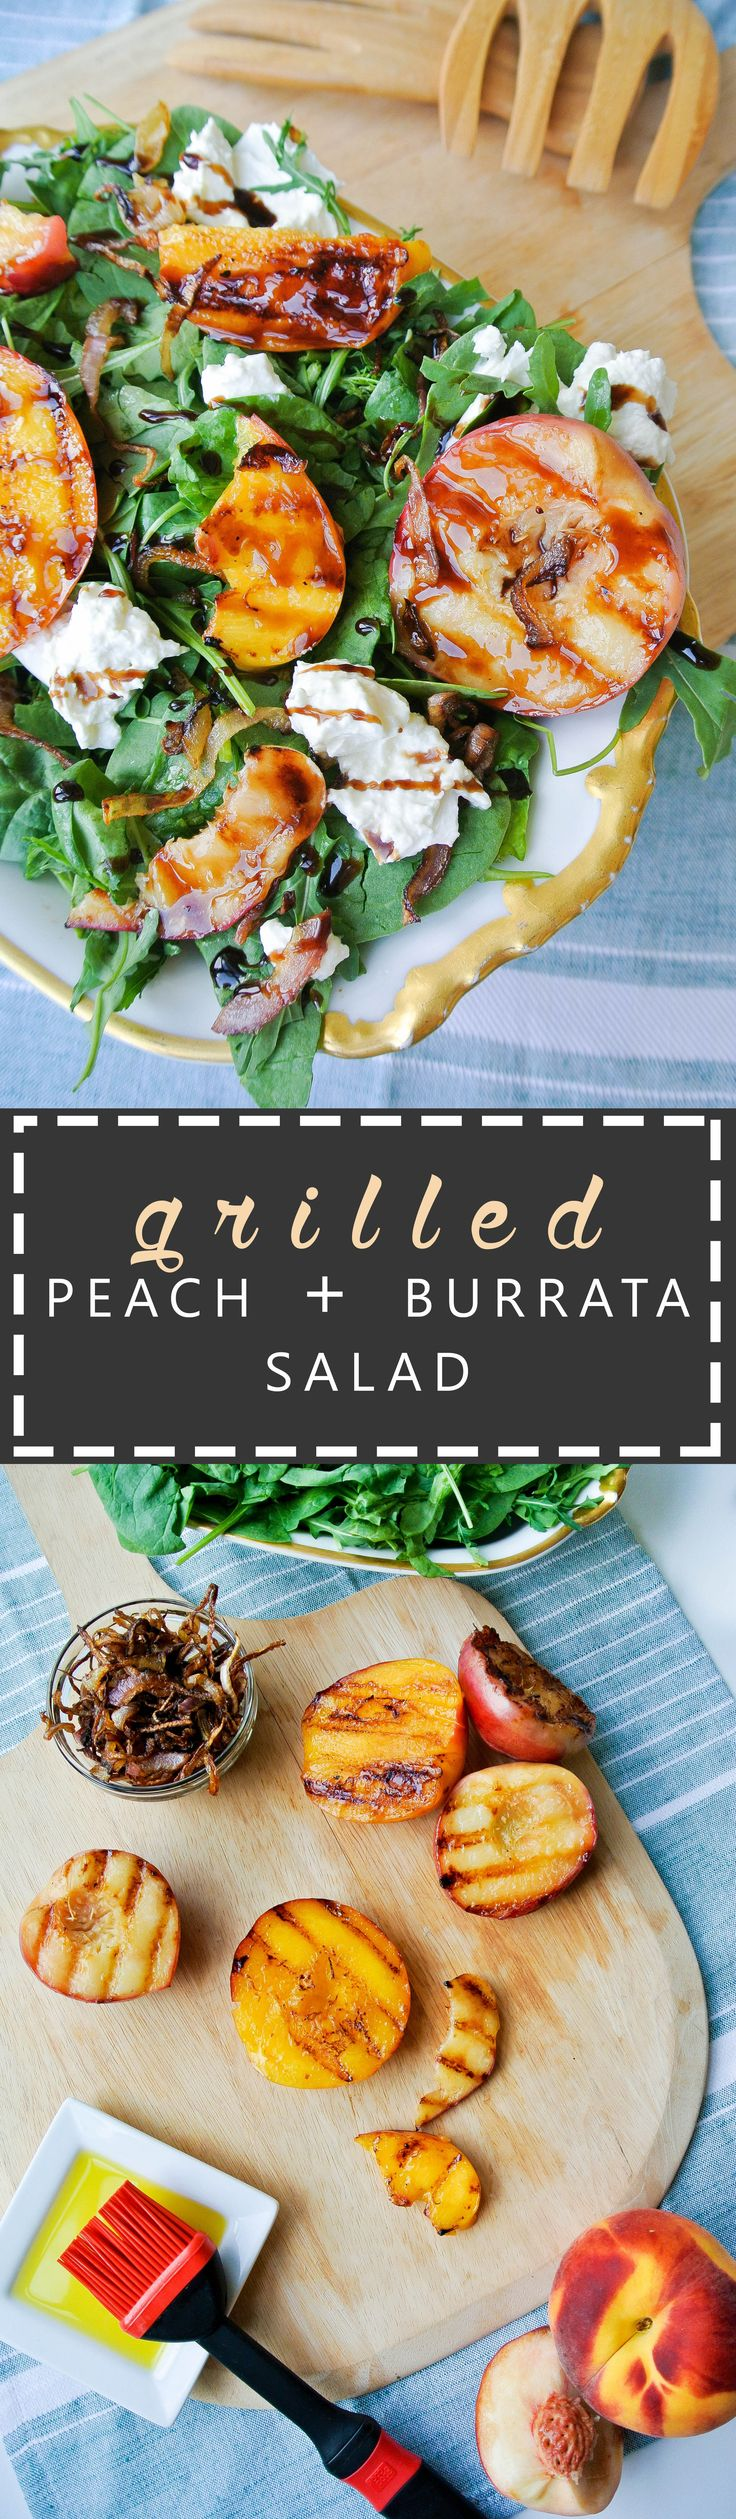 {grilled peach + burrata salad with balsamic glaze} fresh arugula + baby spinach make a beautiful bed for grilled peaches, creamy burrata and caramelized onions.